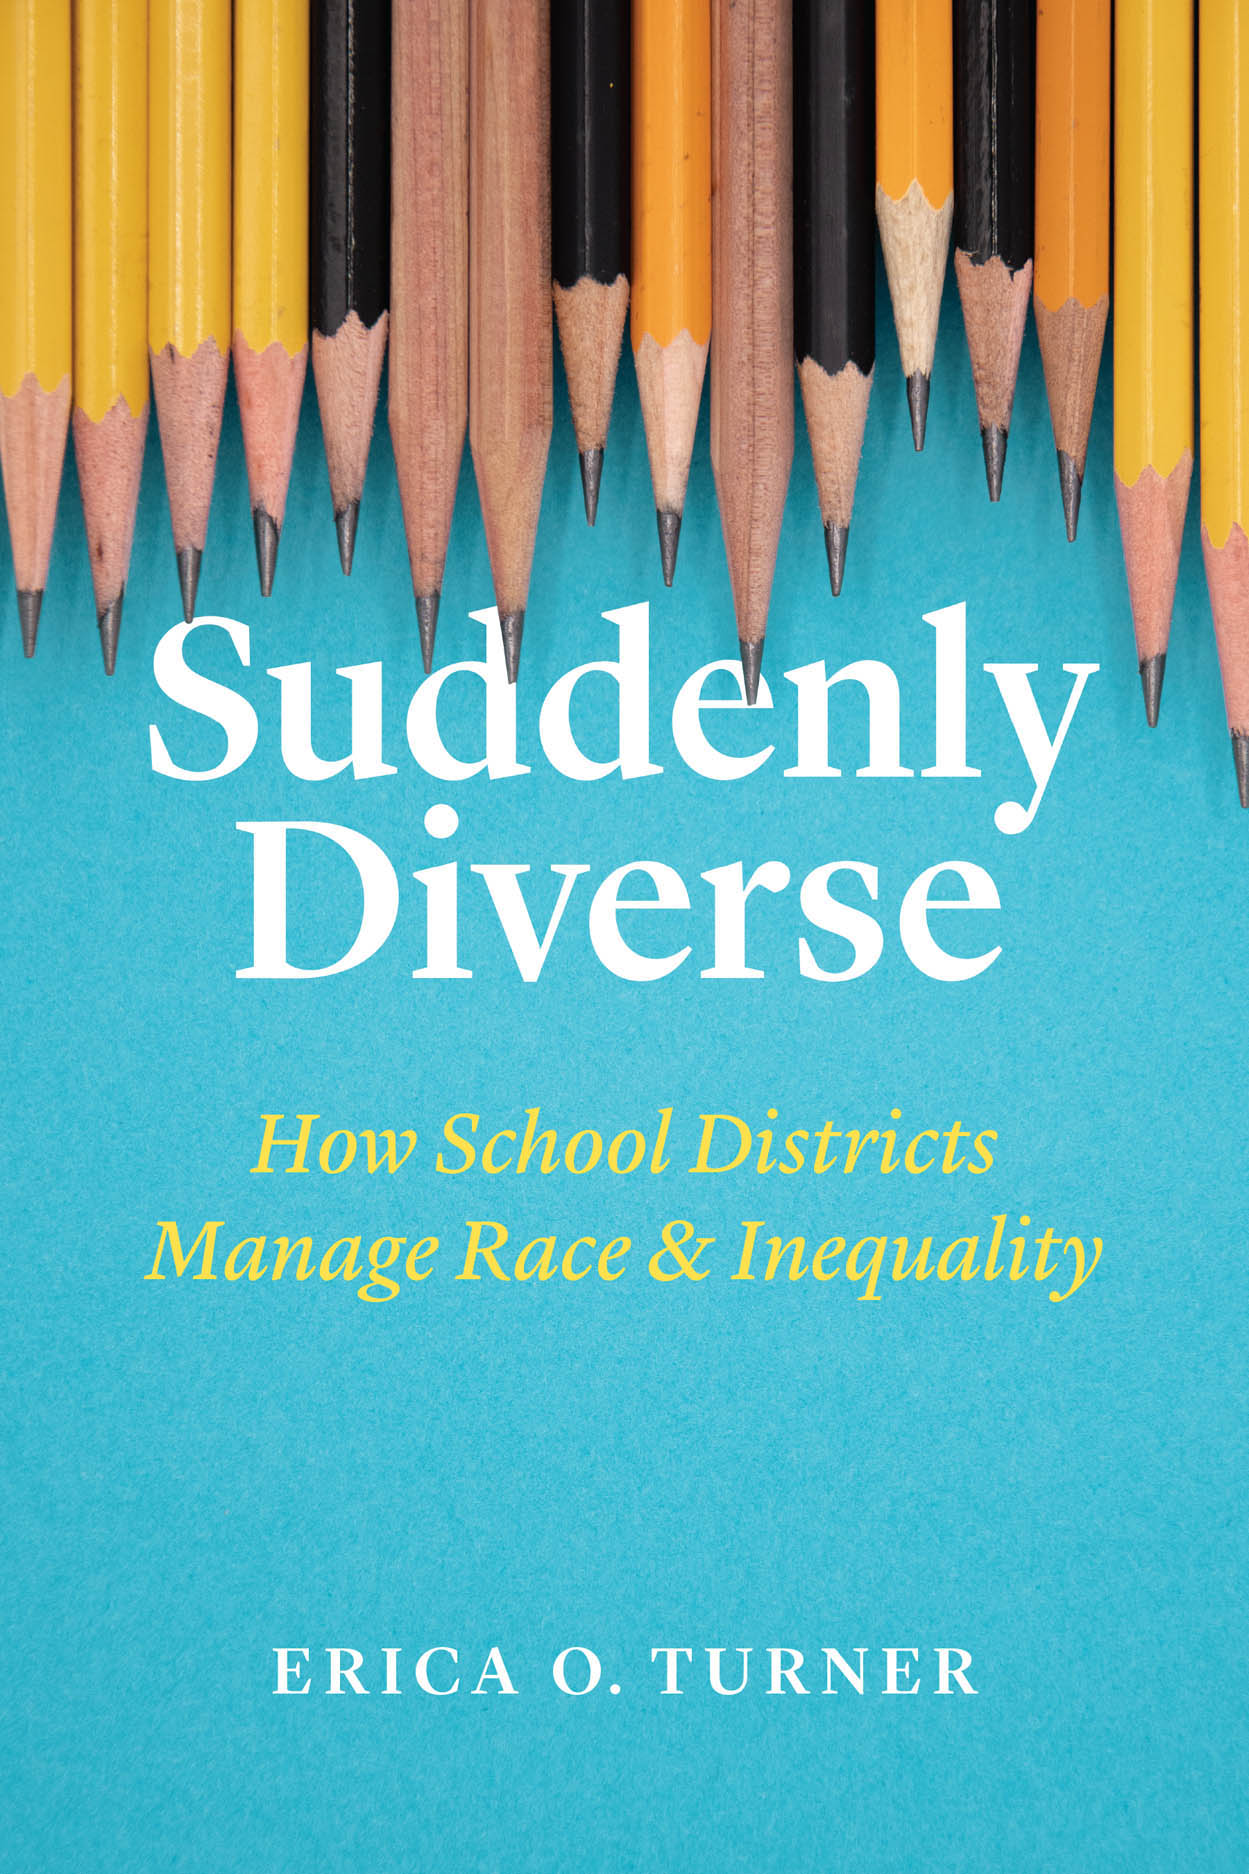 Suddenly Diverse: How School Districts Manage Race and Inequality